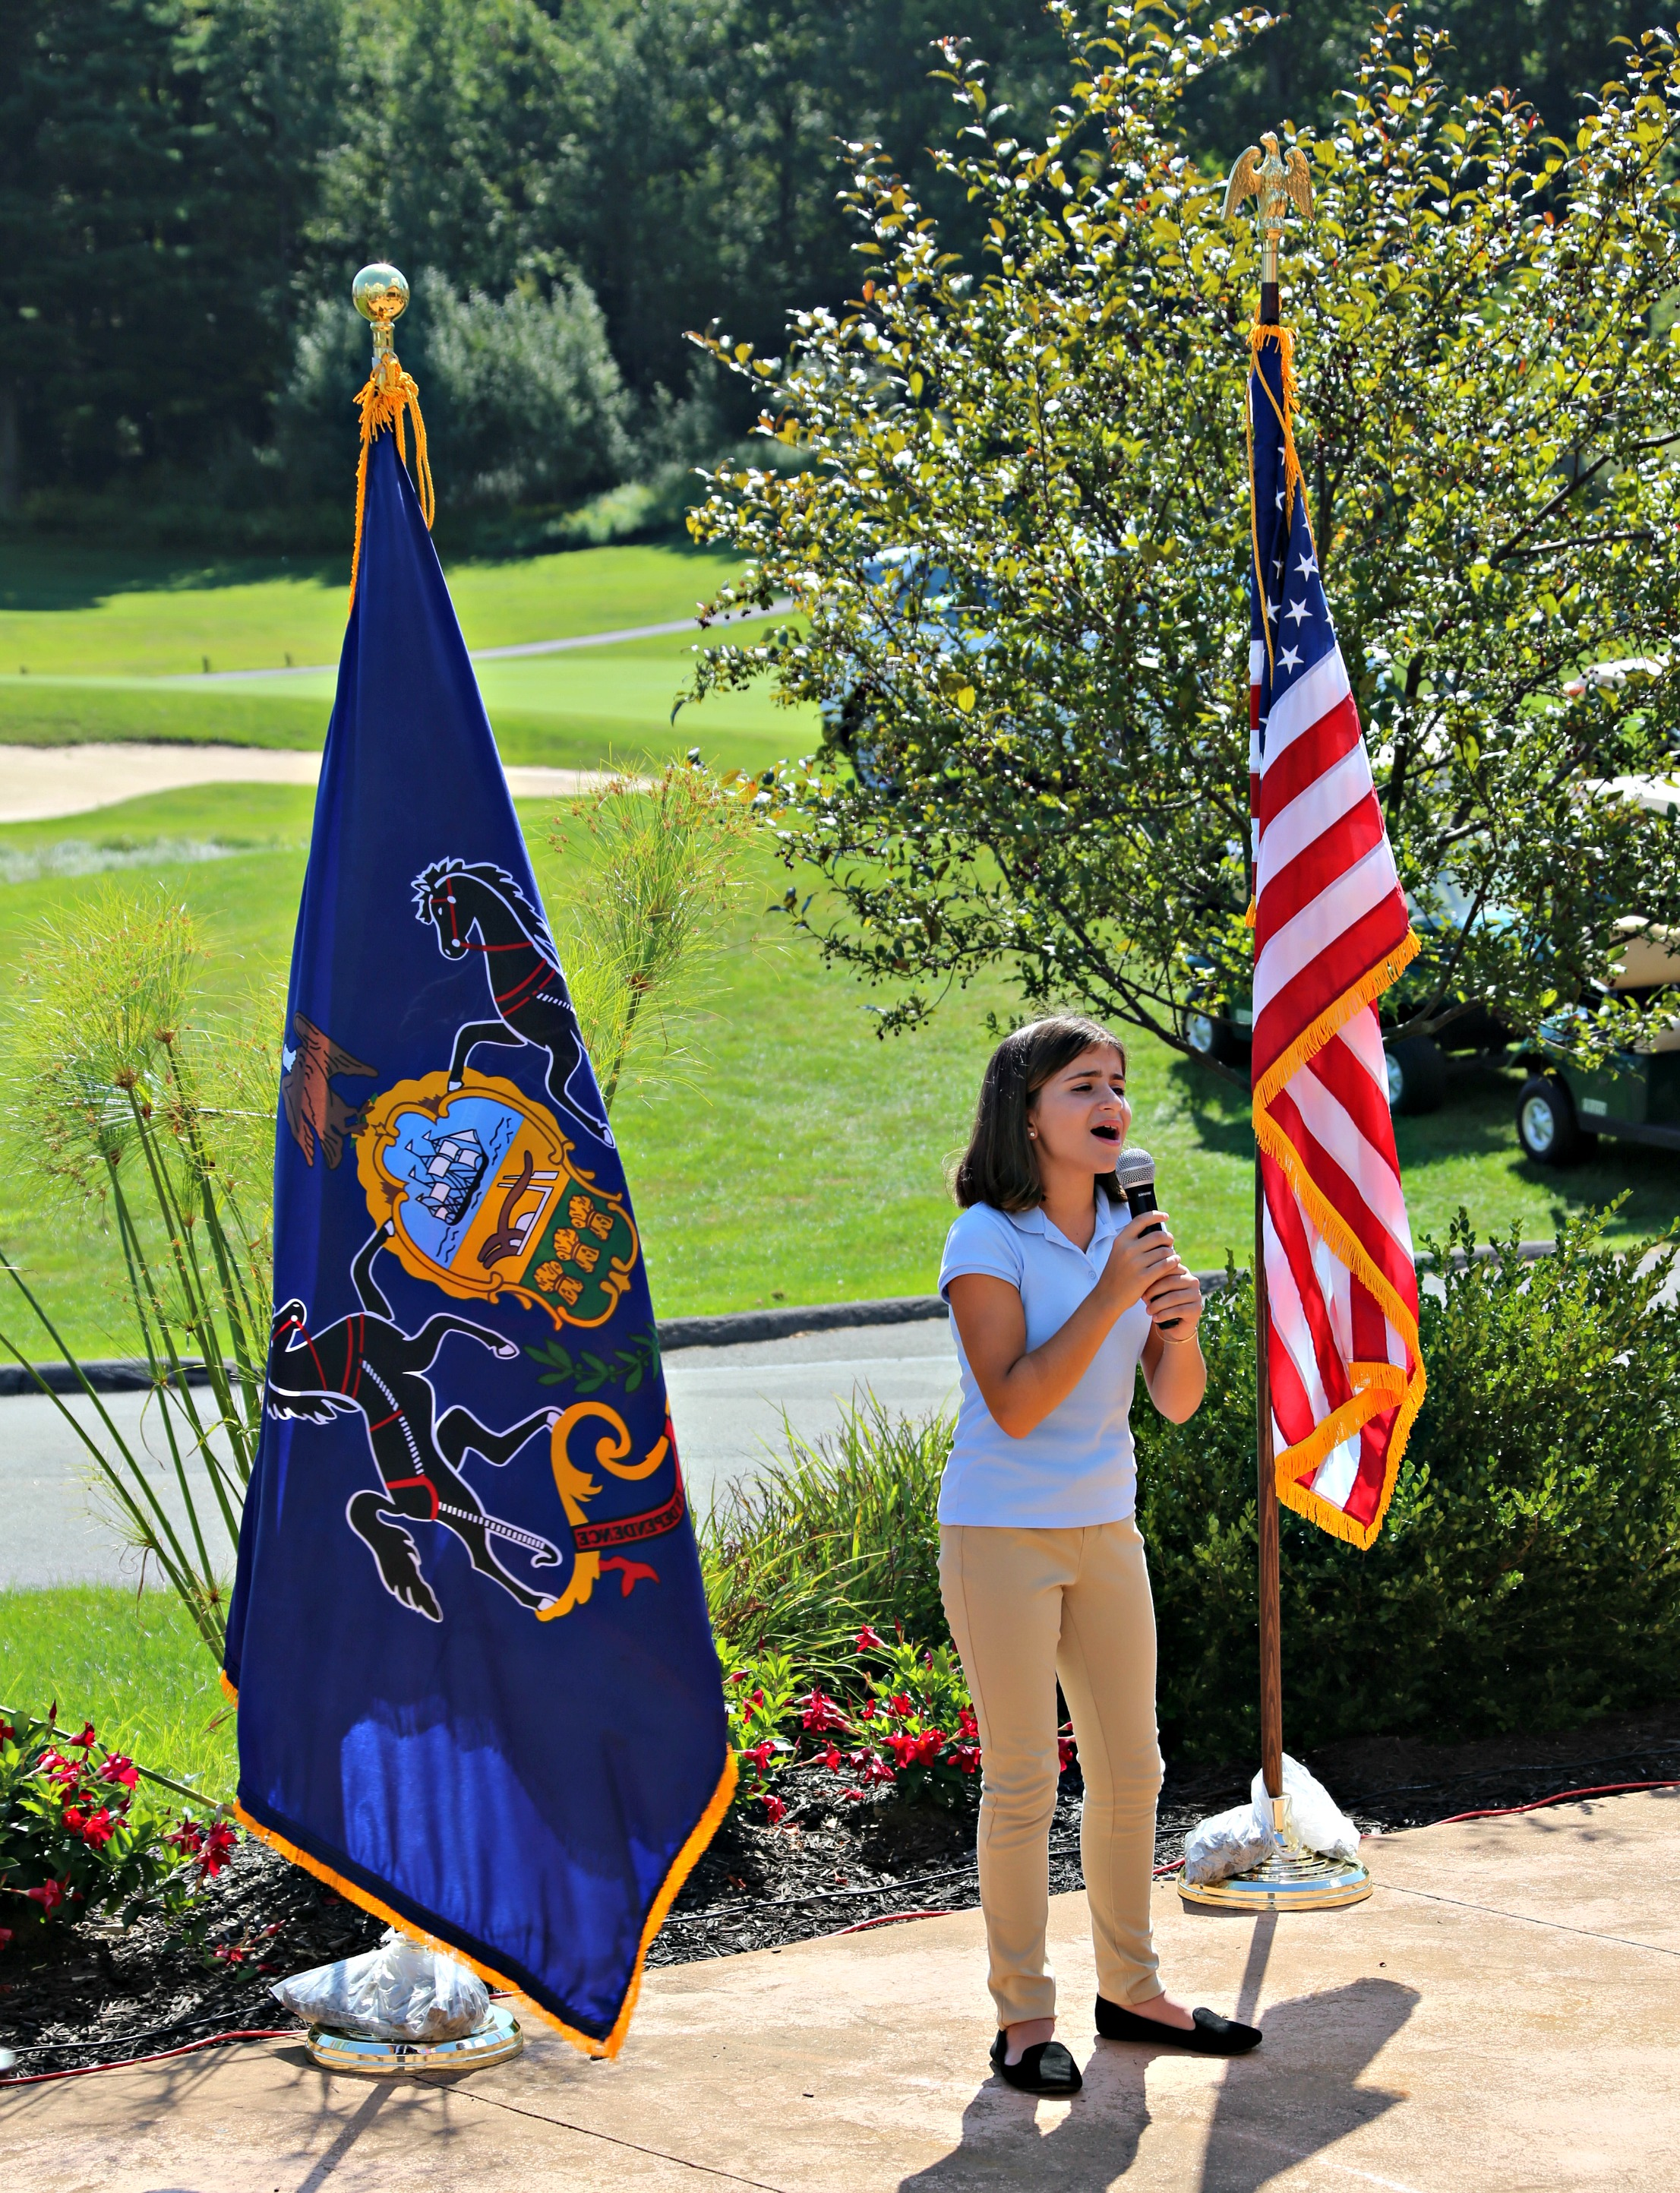 An amazingly talented local individual sings the National Anthem.